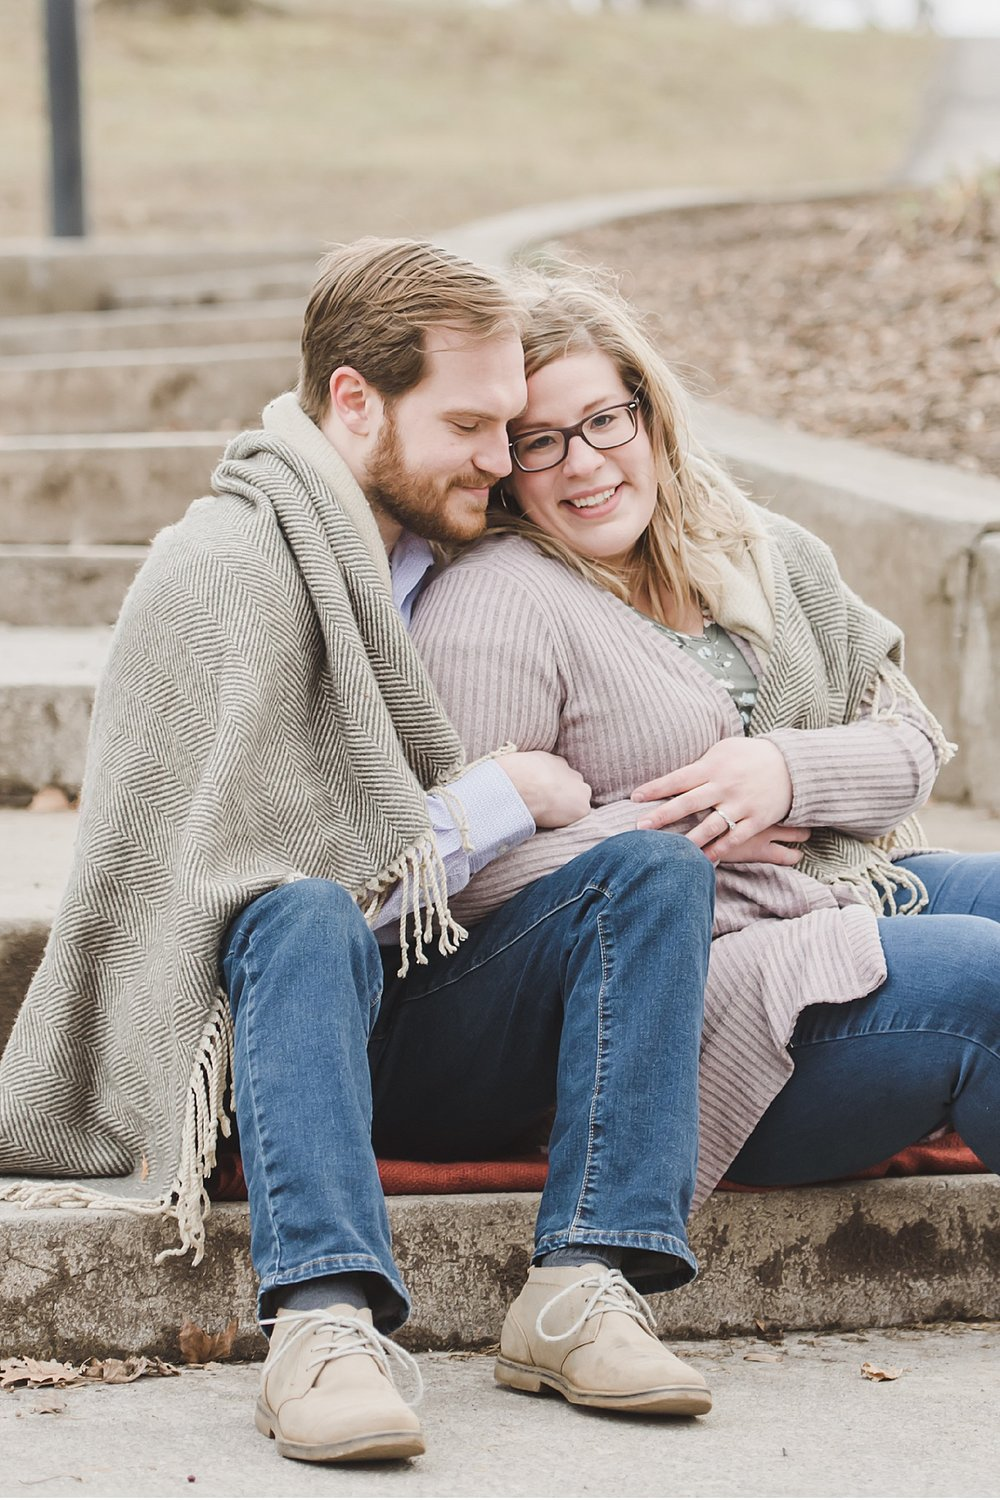 Lancaster airport Lititz Wedding photographer engagement session photo_2942.jpg